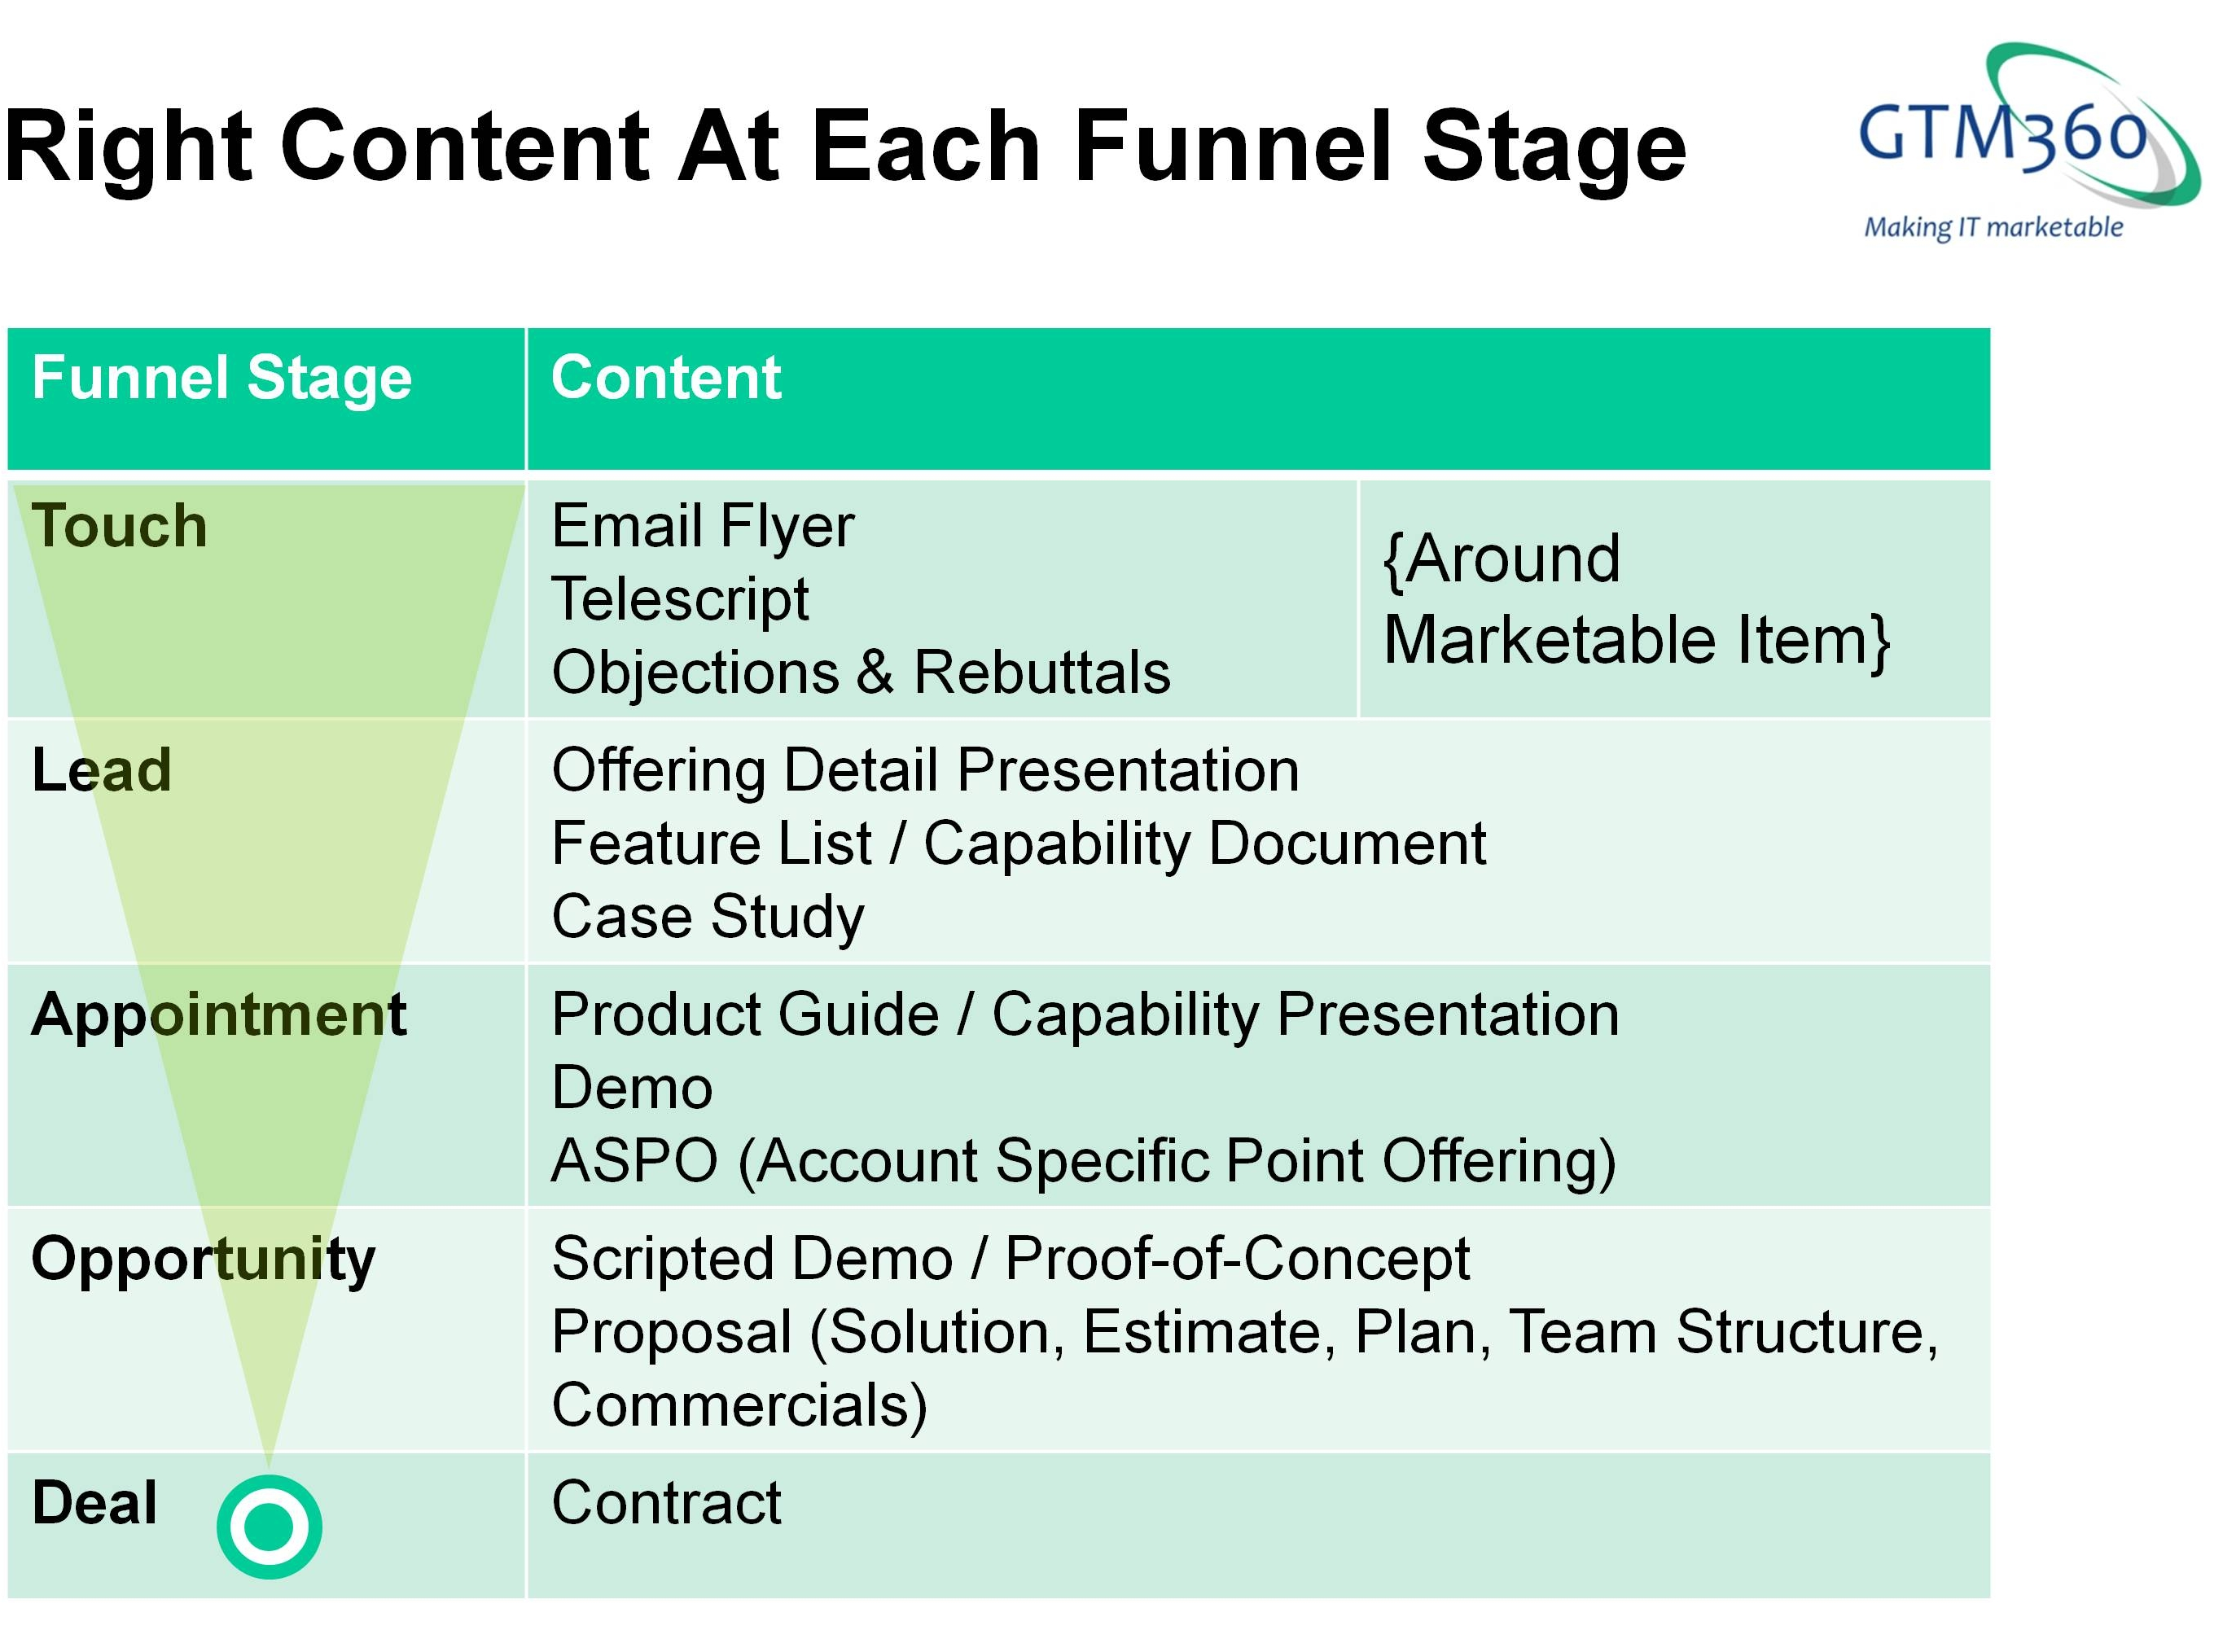 Right Content At Each Funnel Stage